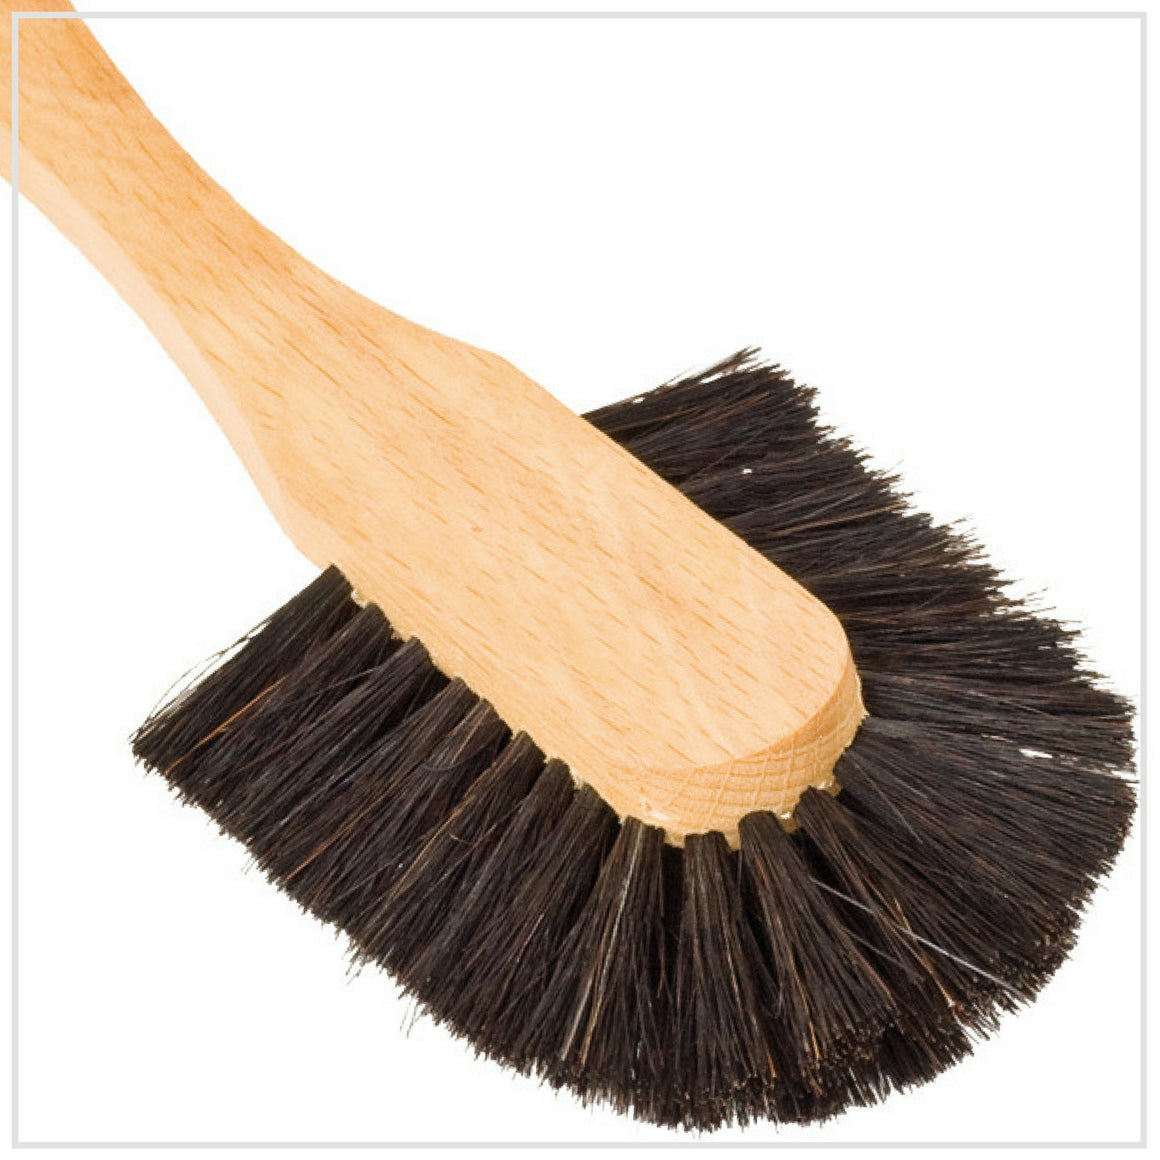 Dish Brush General